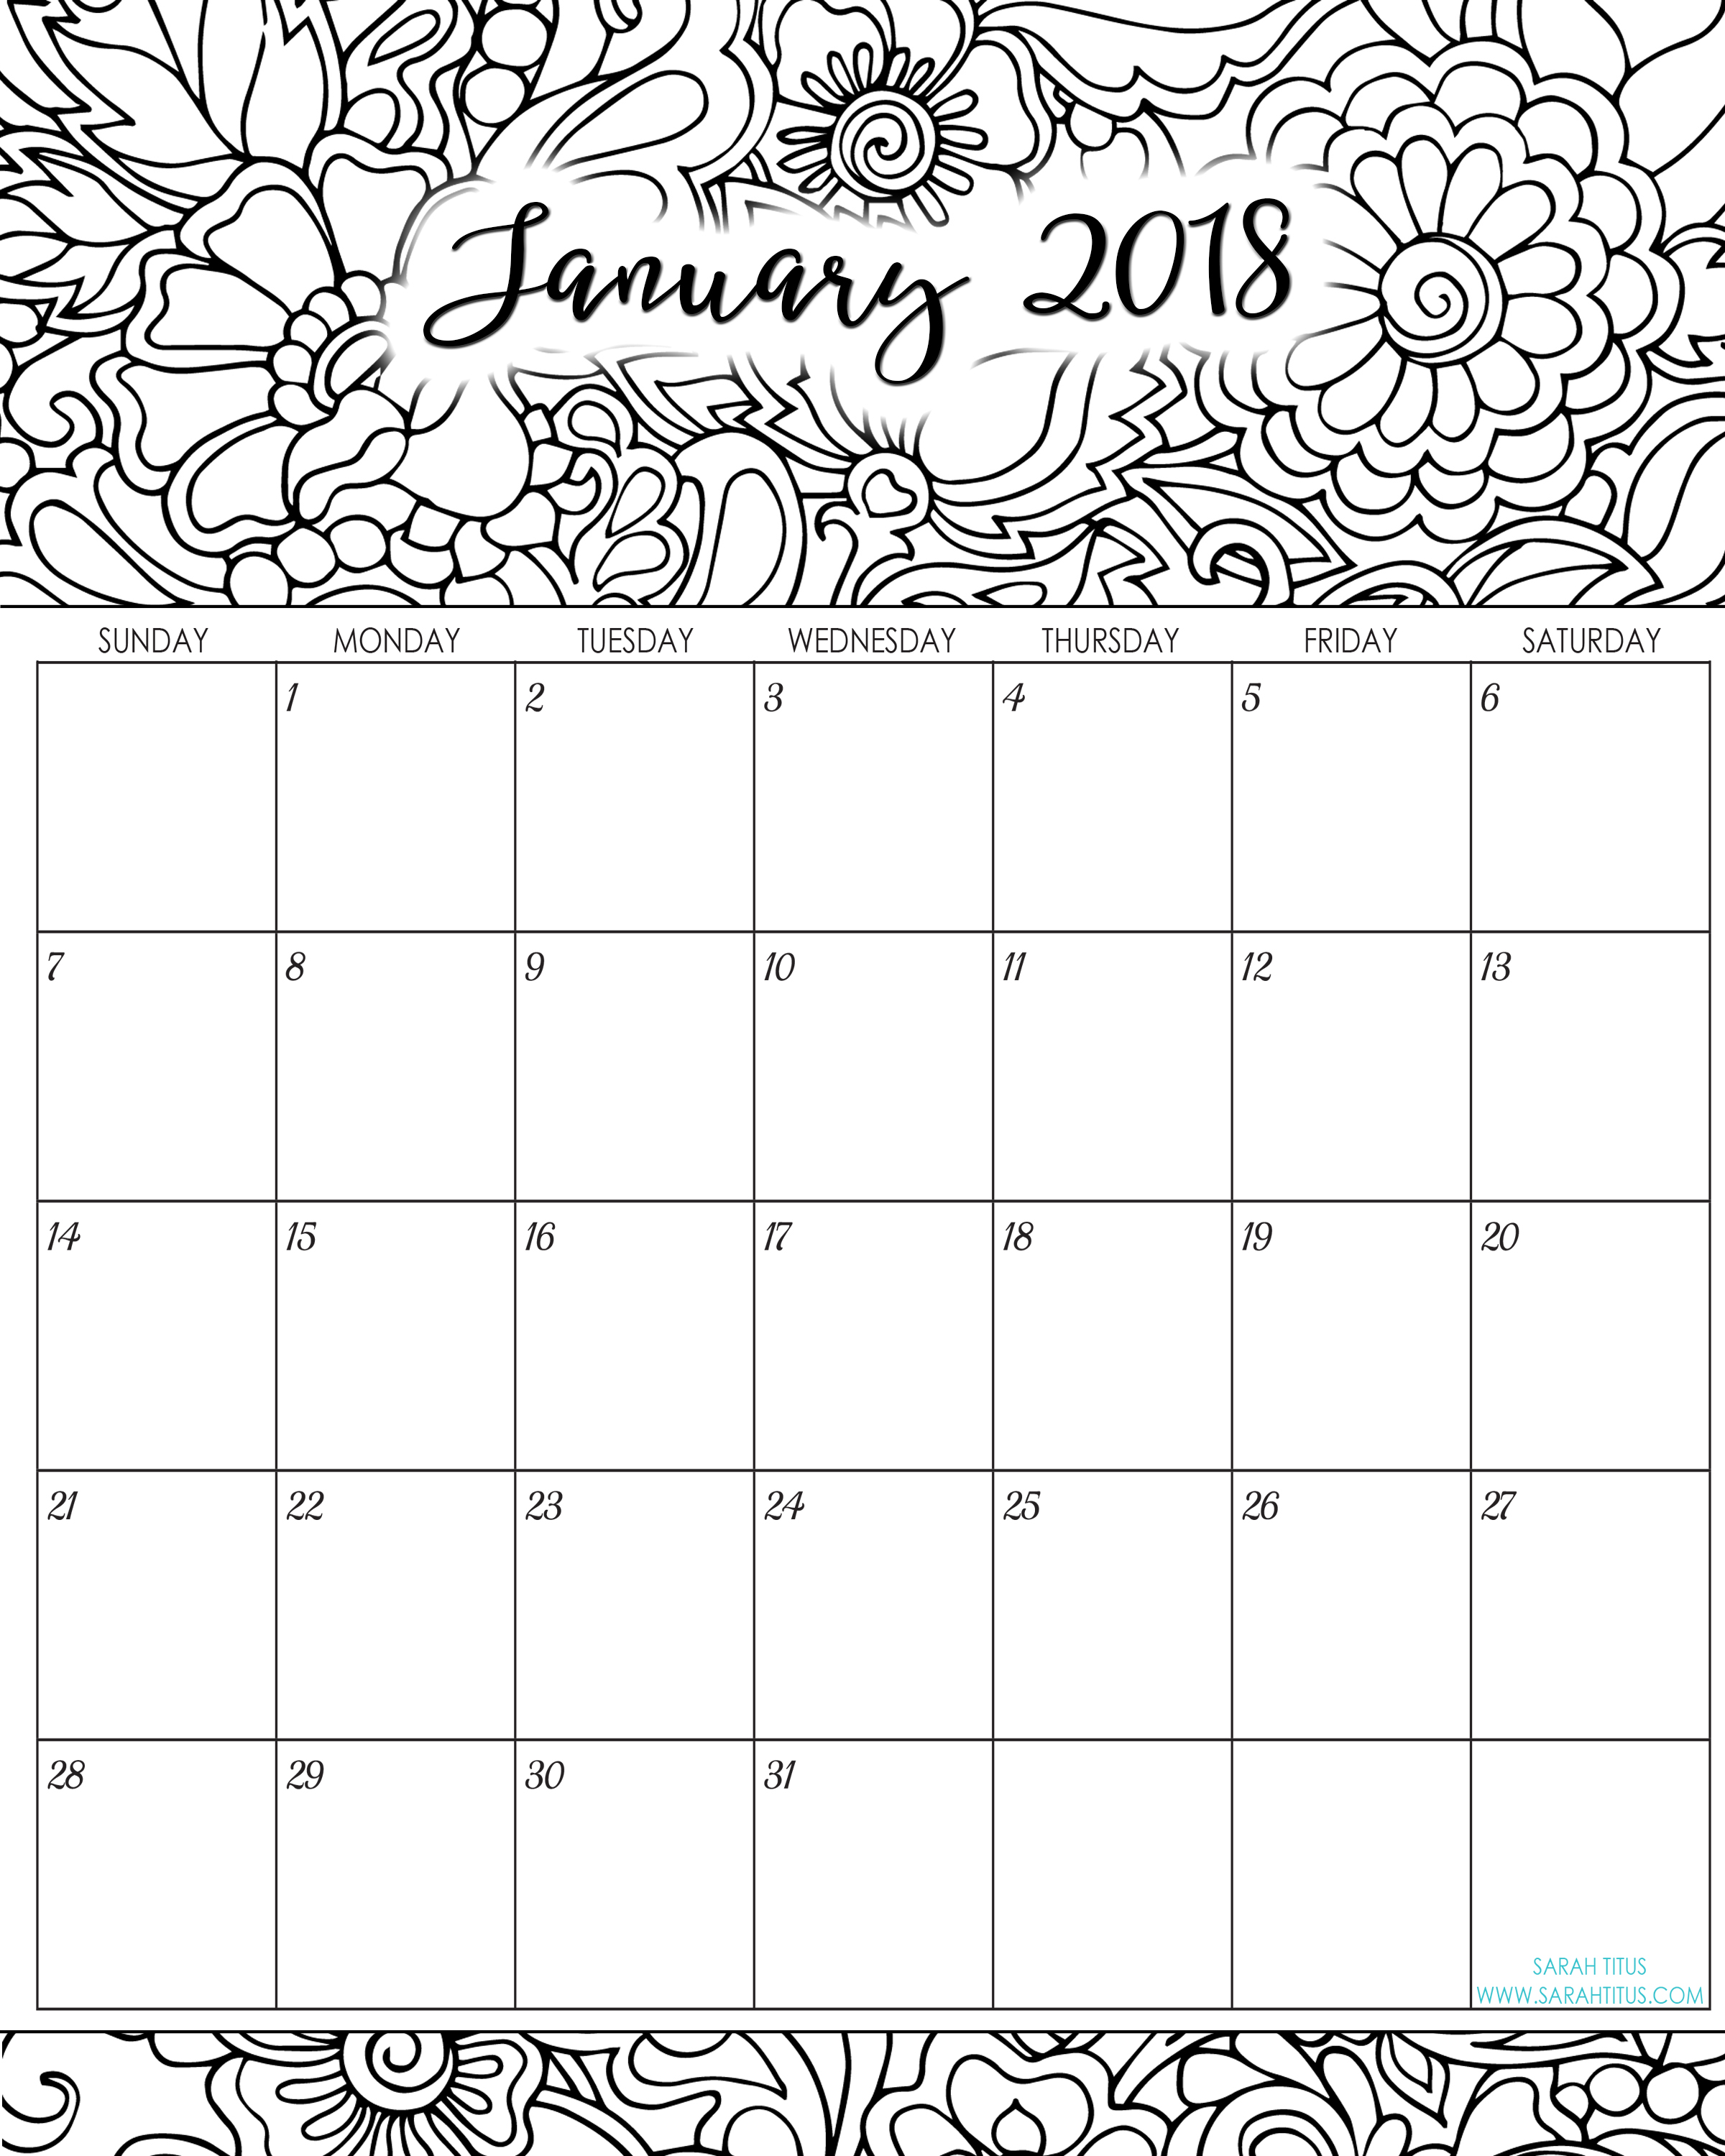 Calender 2019 Coloring With 2018 Monthly Calendars Printables Sarah Titus